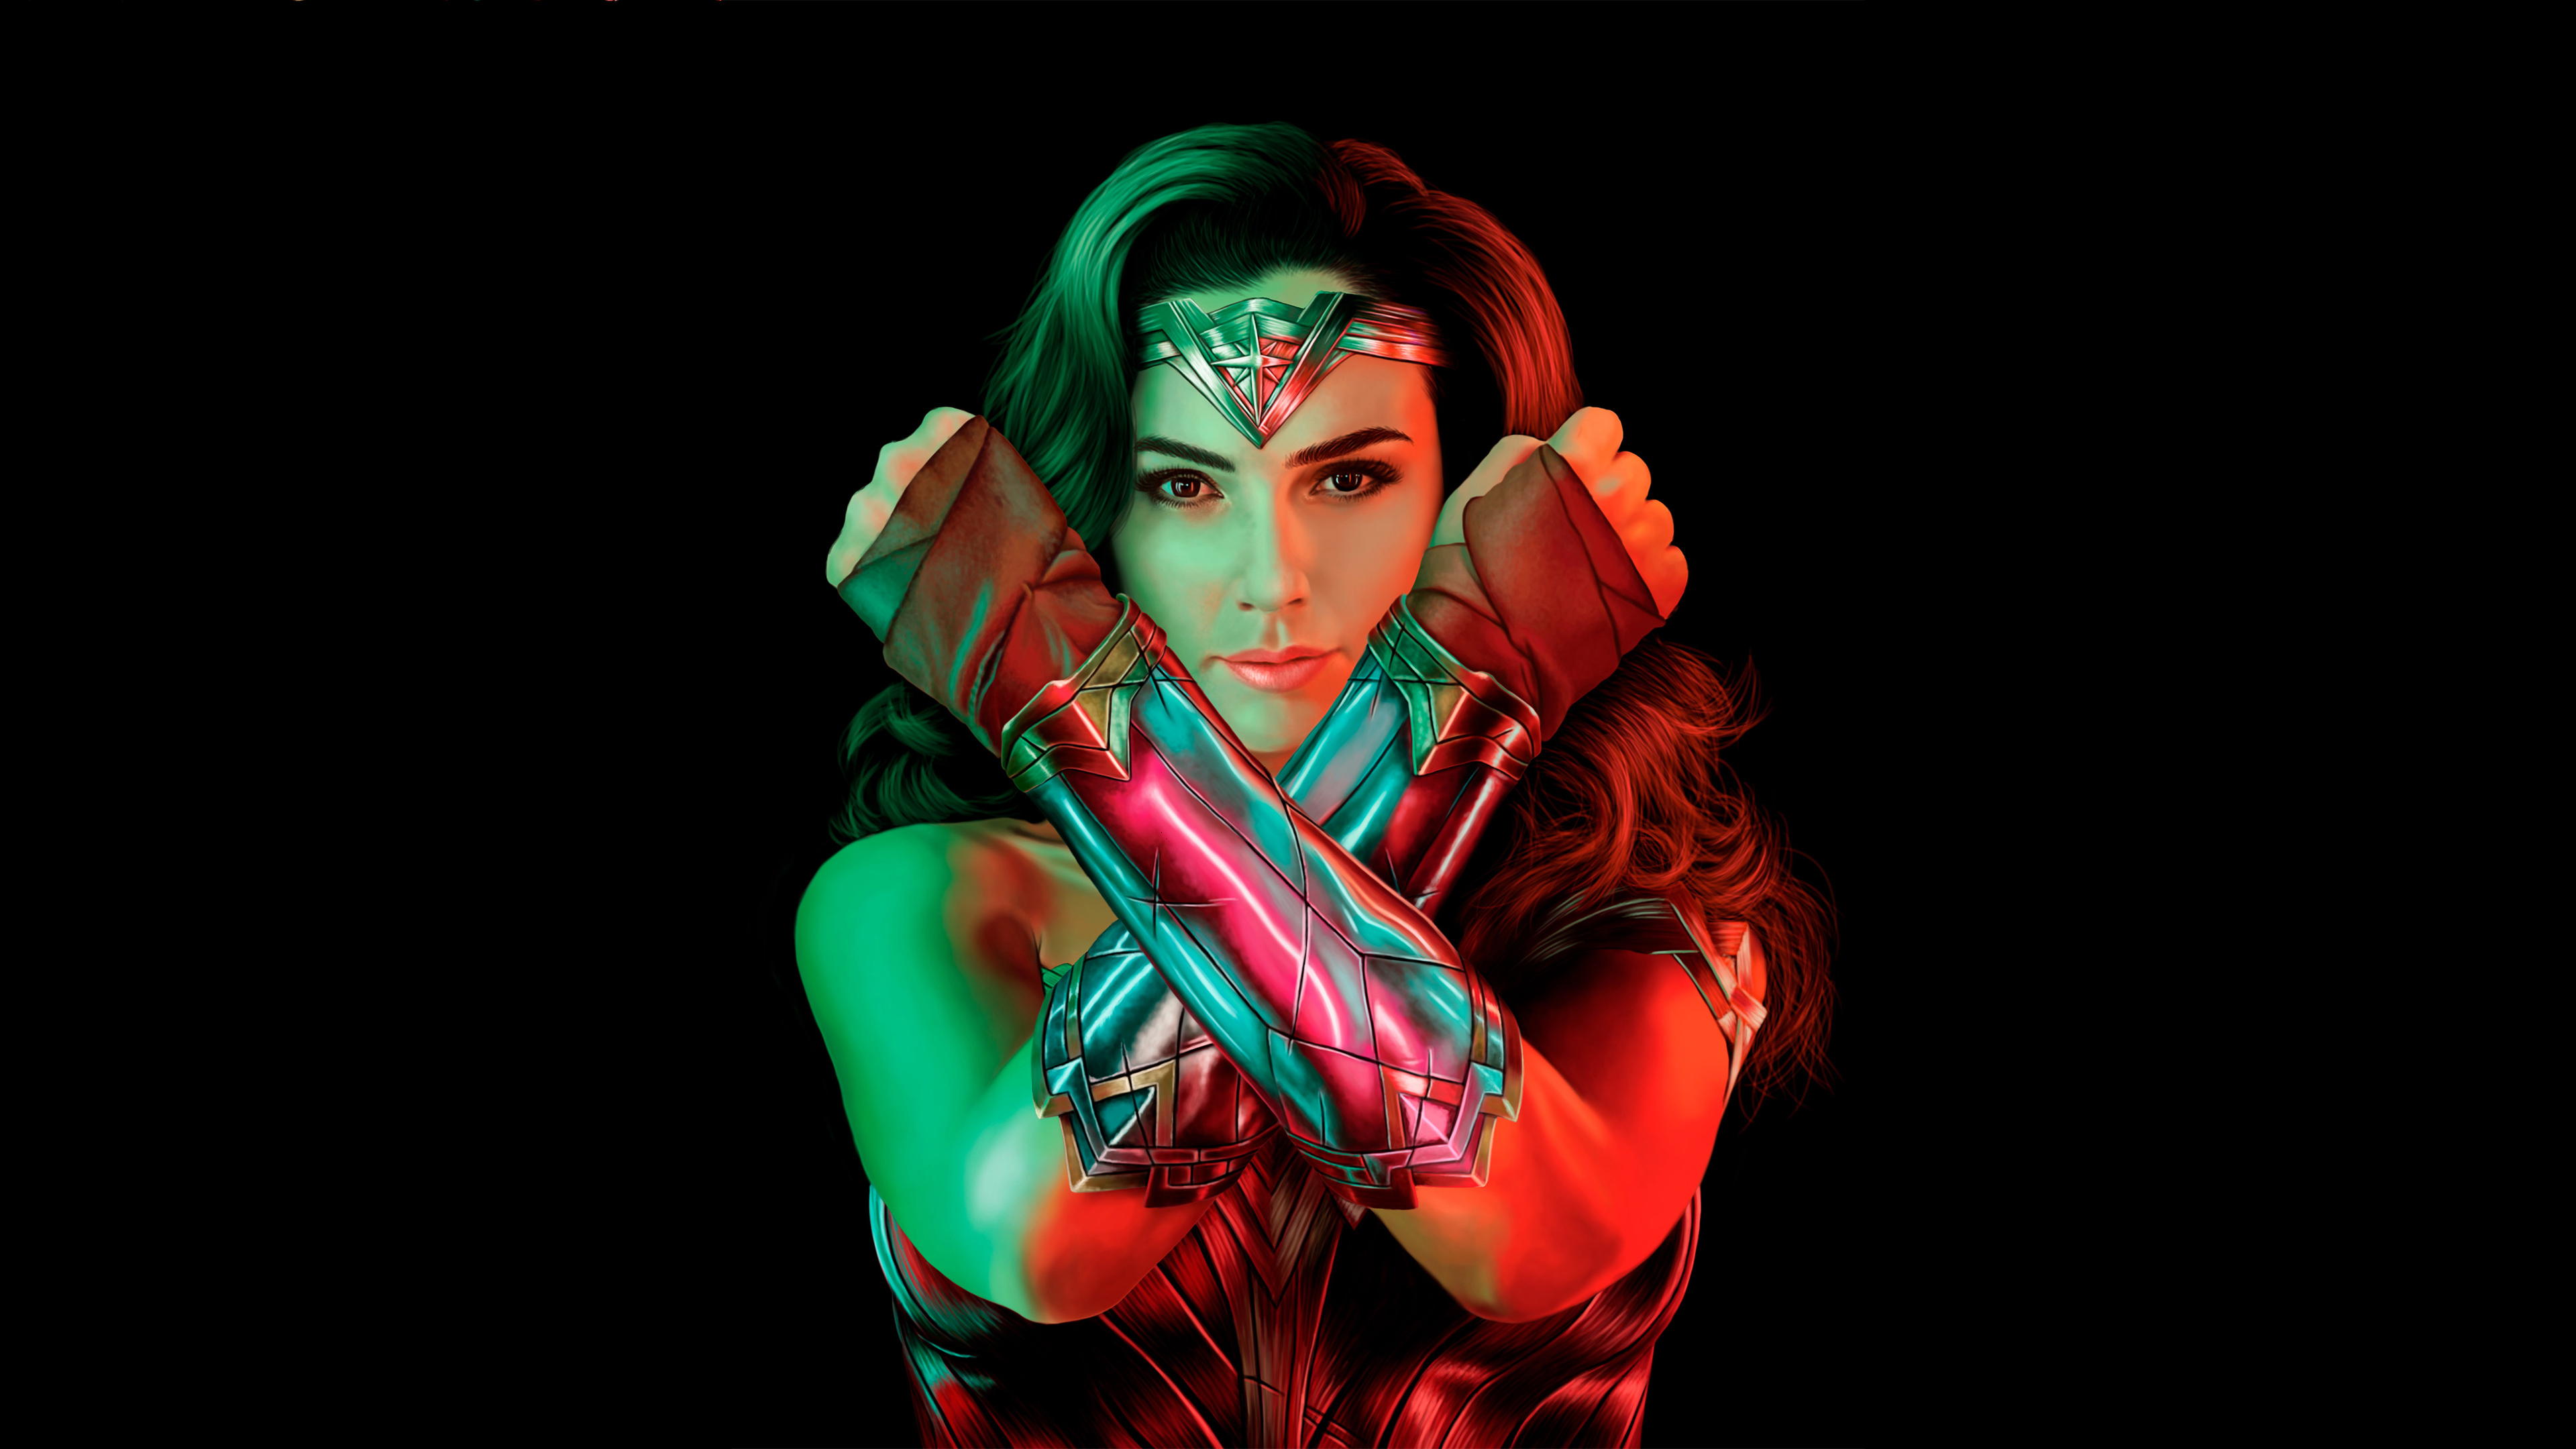 Wallpaper Wonder Woman with green and red lights